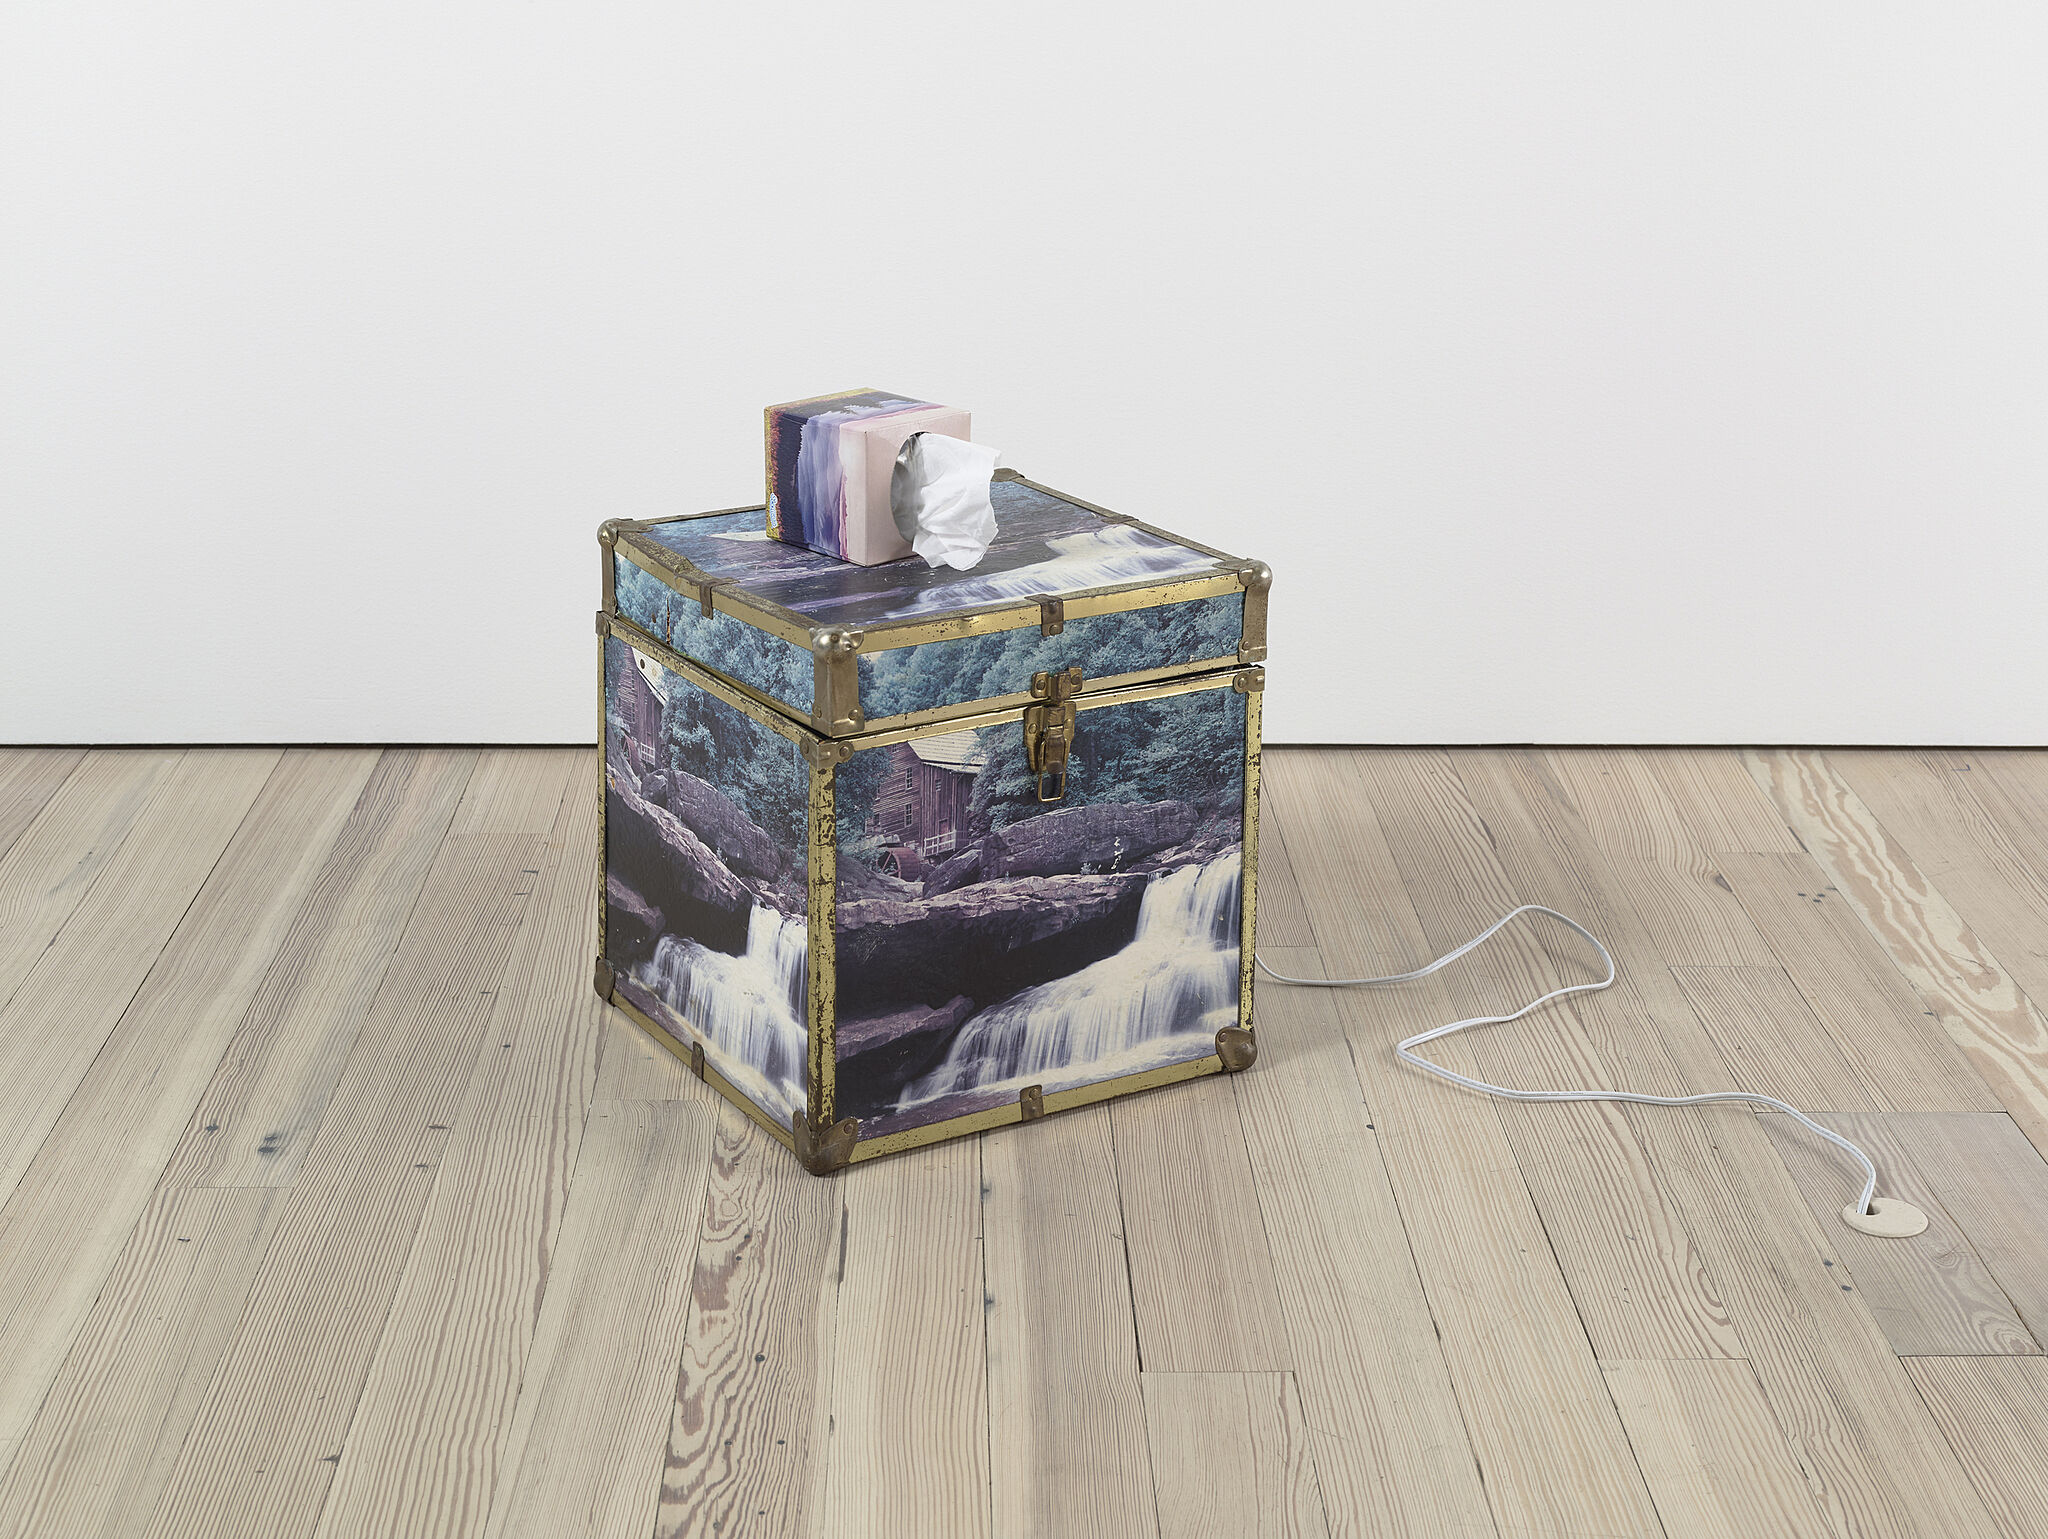 A box of tissues on top of a trunk with an image of a waterfall on it.